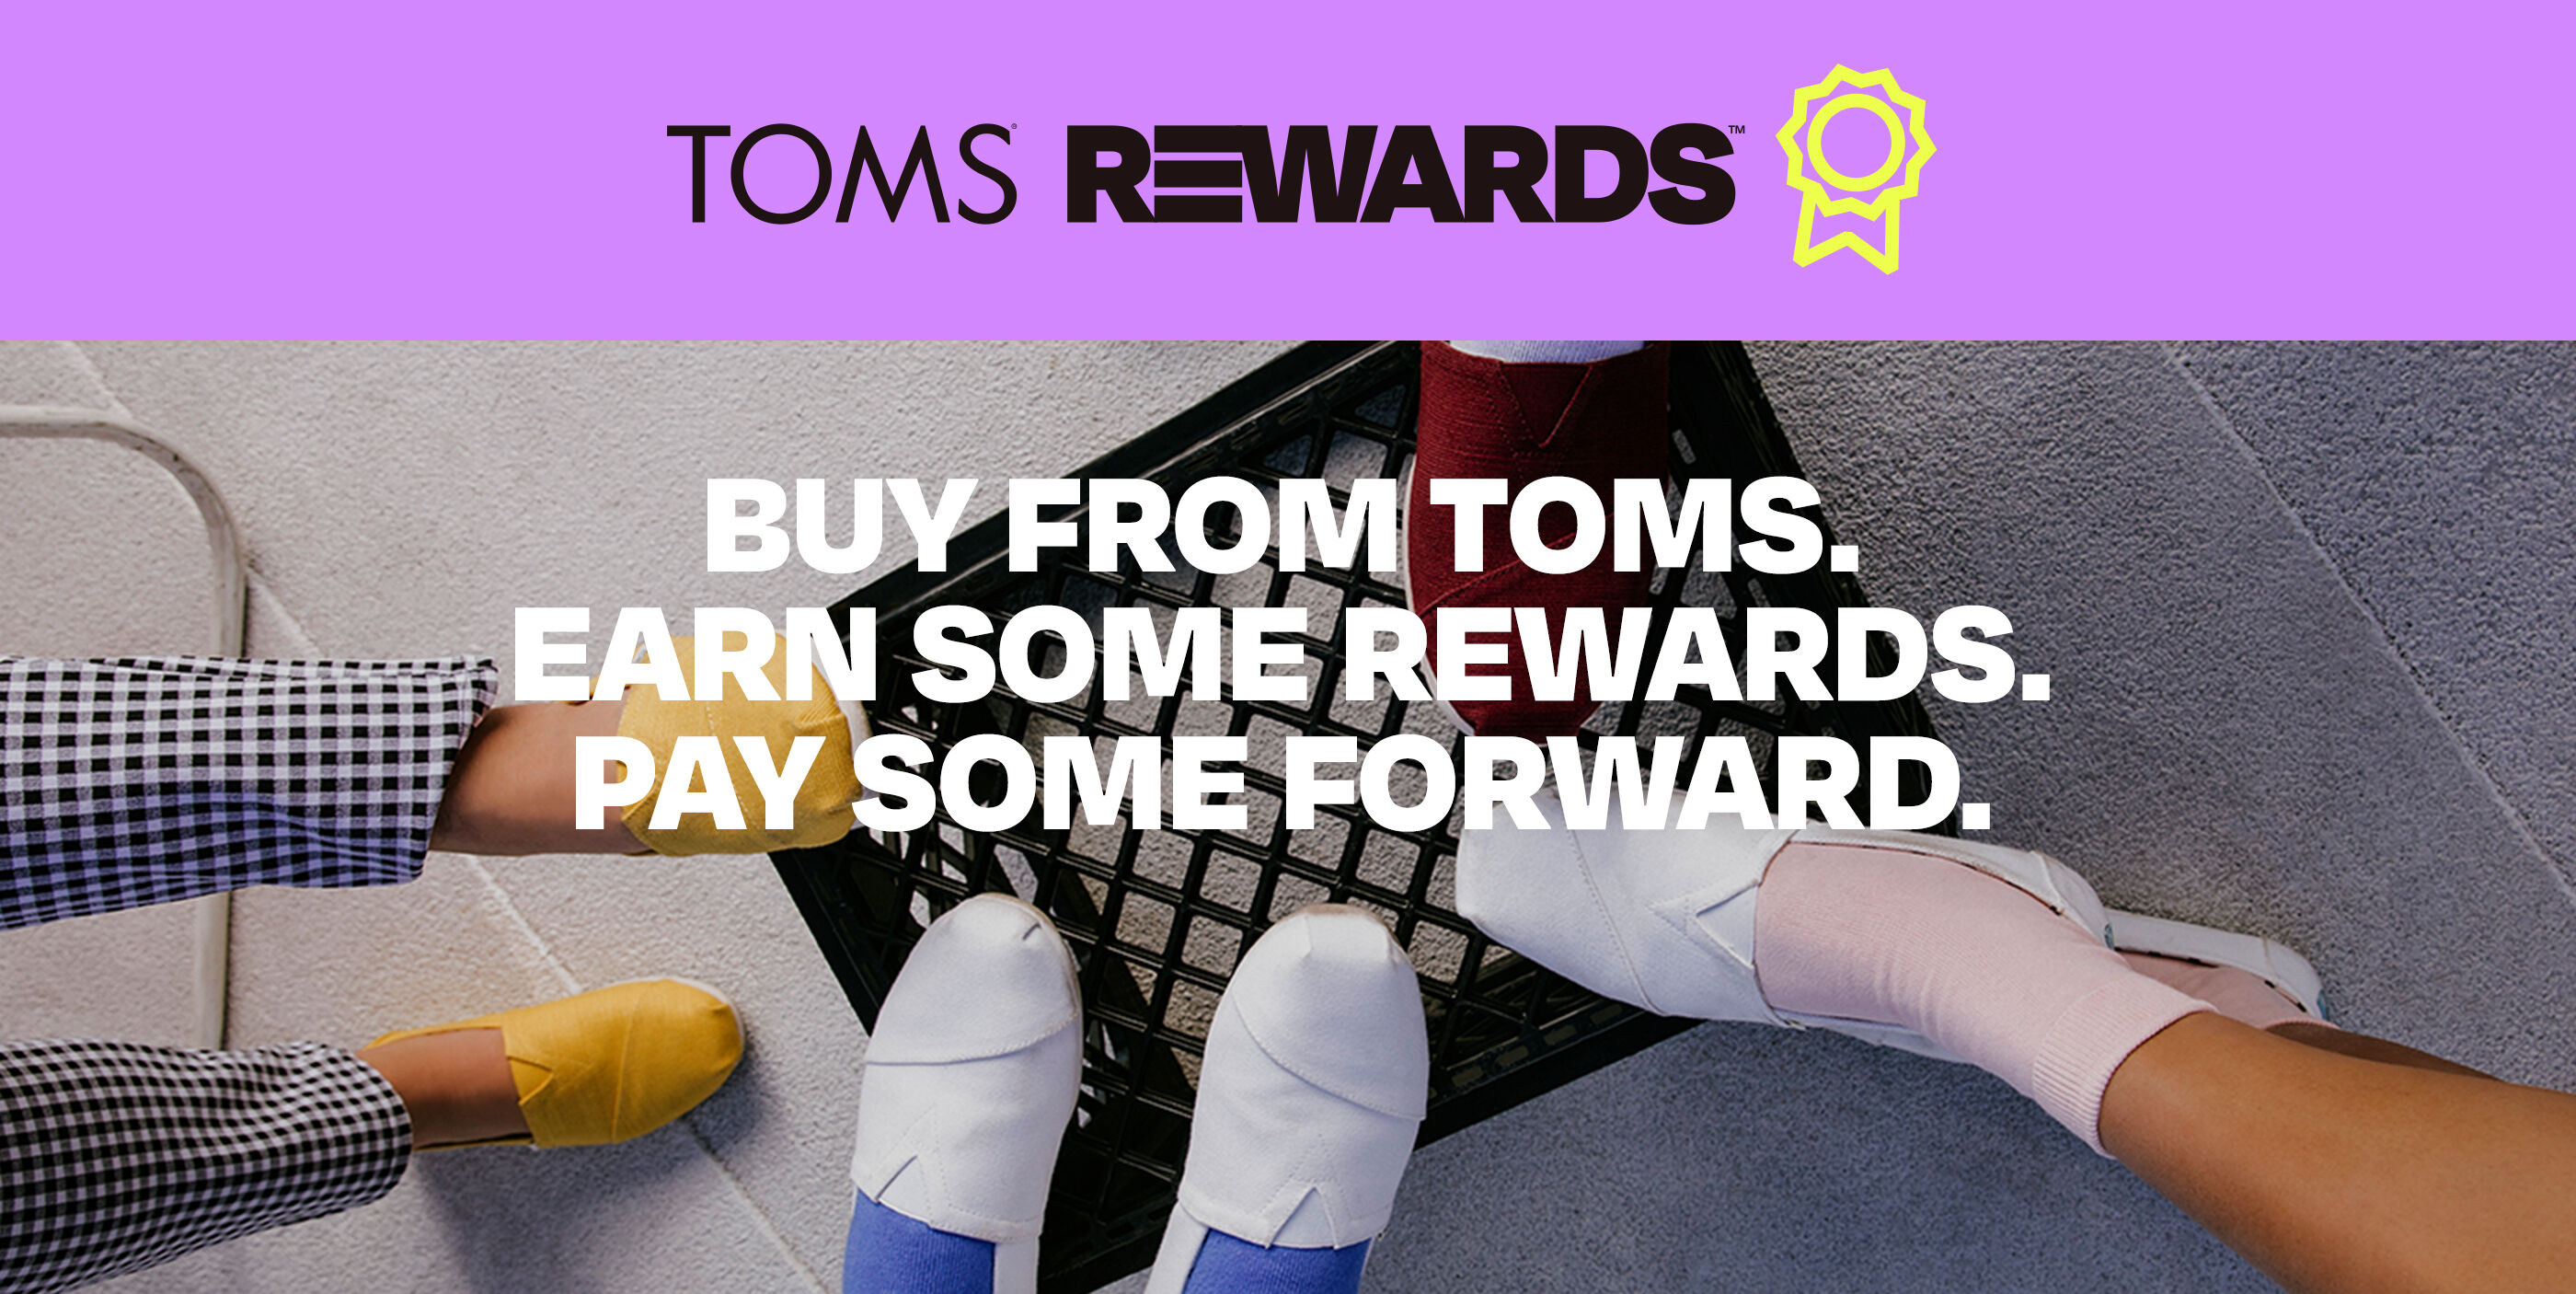 """""""TOMS REWARDS. Buy from TOMS. Earn some rewards. Pay some forward."""" Image with multiple people's feet in TOMS Alpargatas on top of a milk crate."""